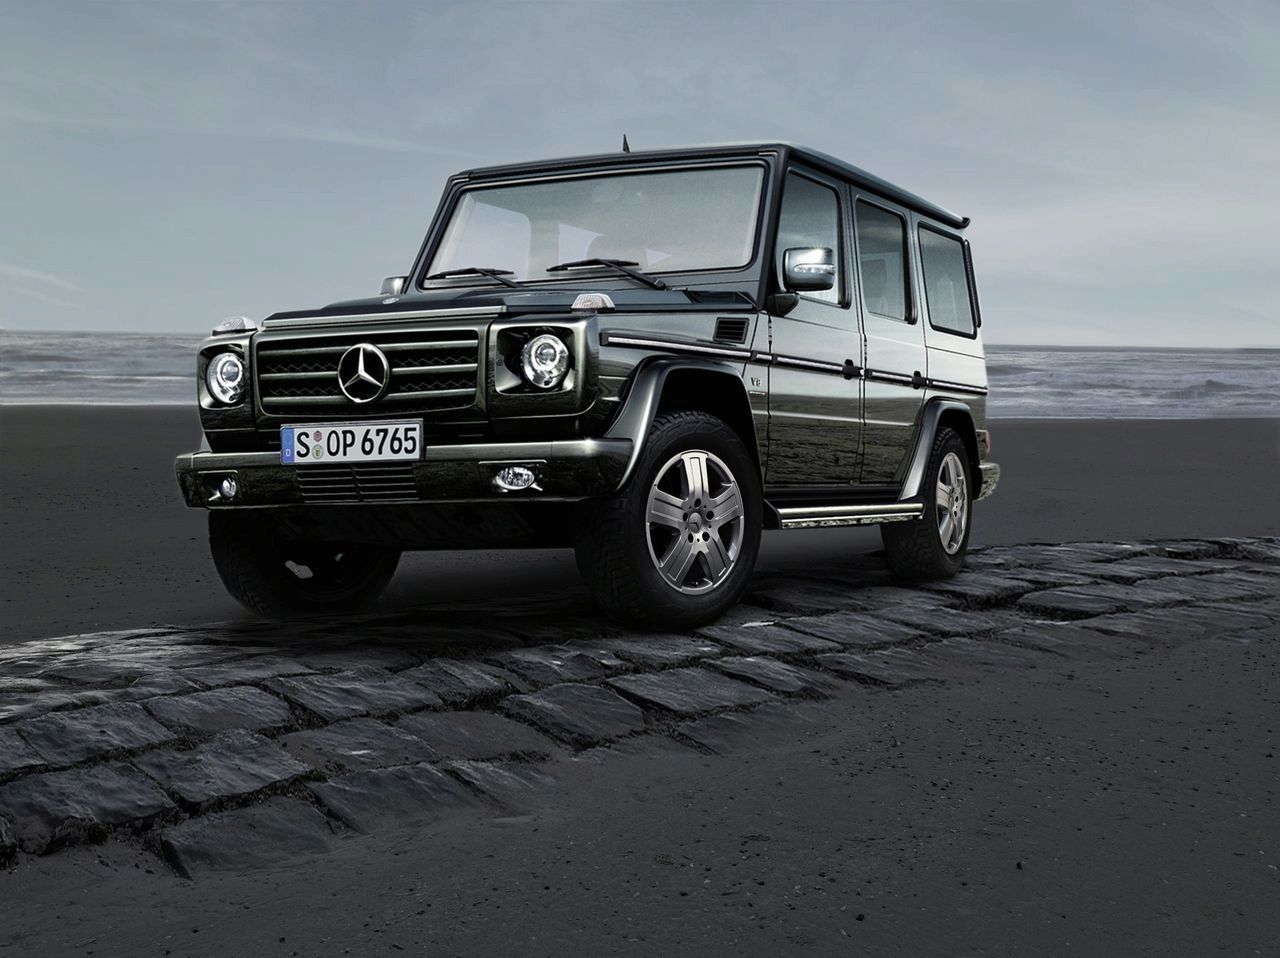 find this pin and more on cars and bikes by viniciusfreitas mercedes benz g class